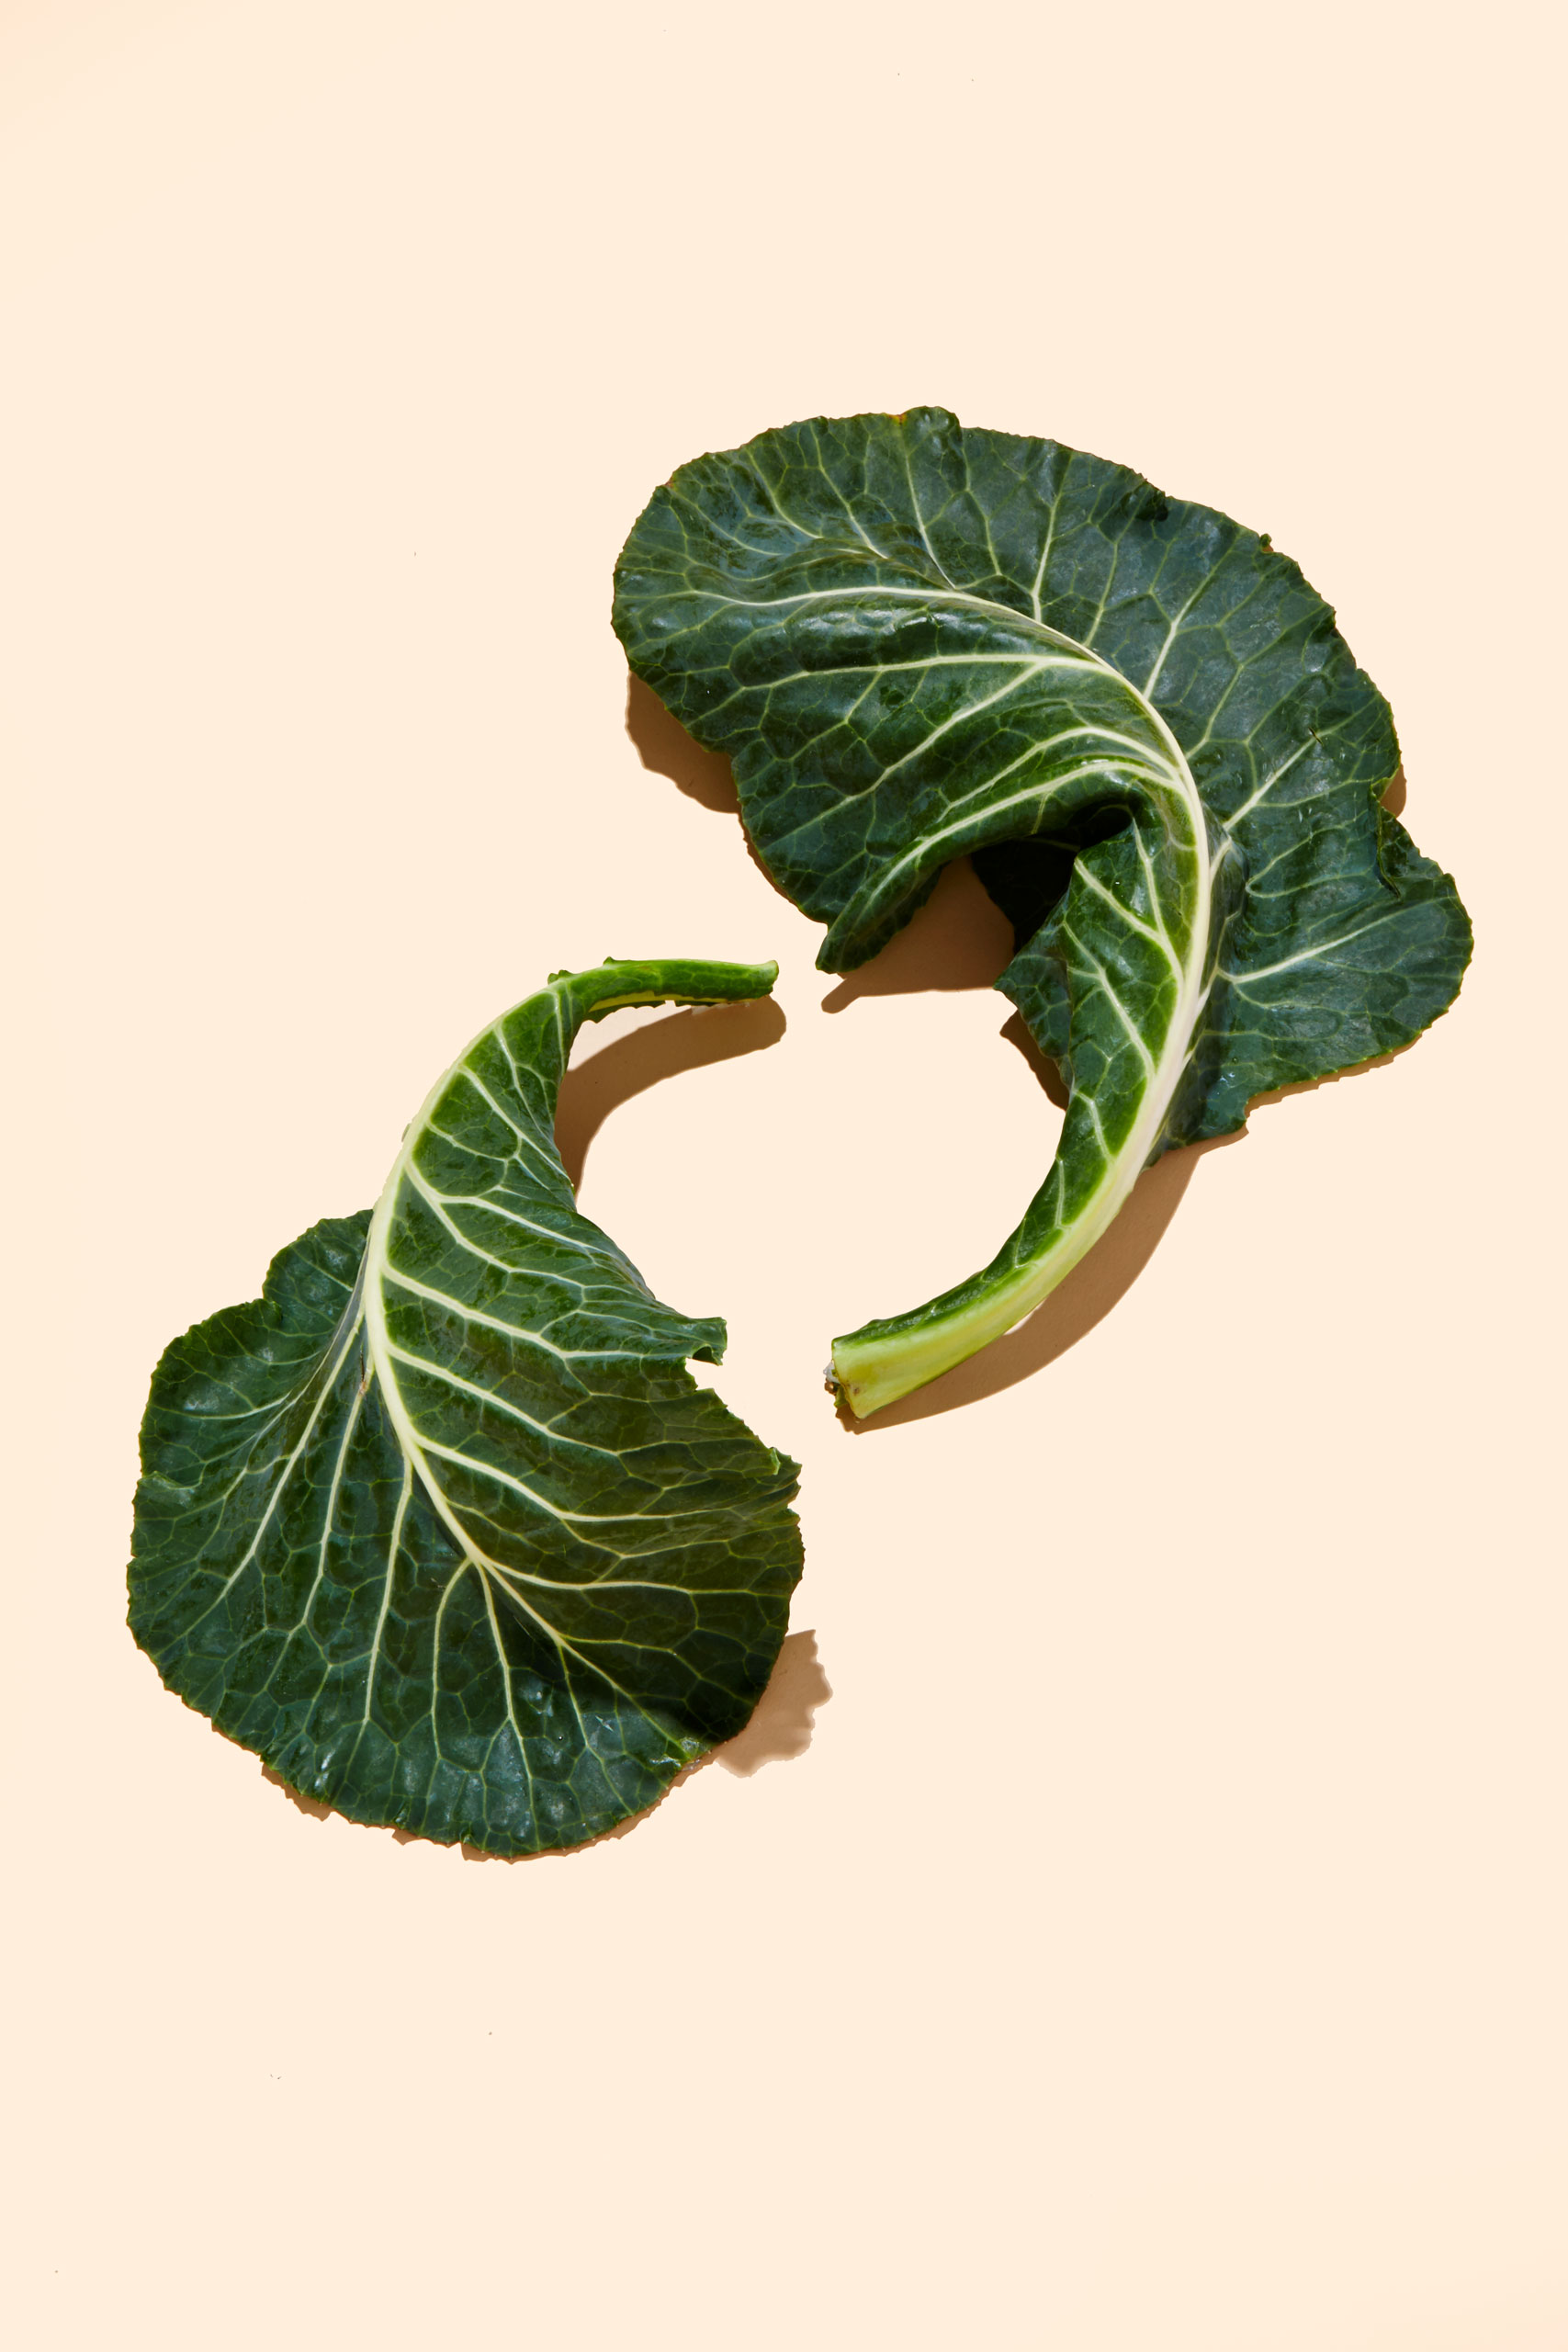 healthiest foods, health food, diet, nutrition, time.com stock, collard greens, vegetables, greens